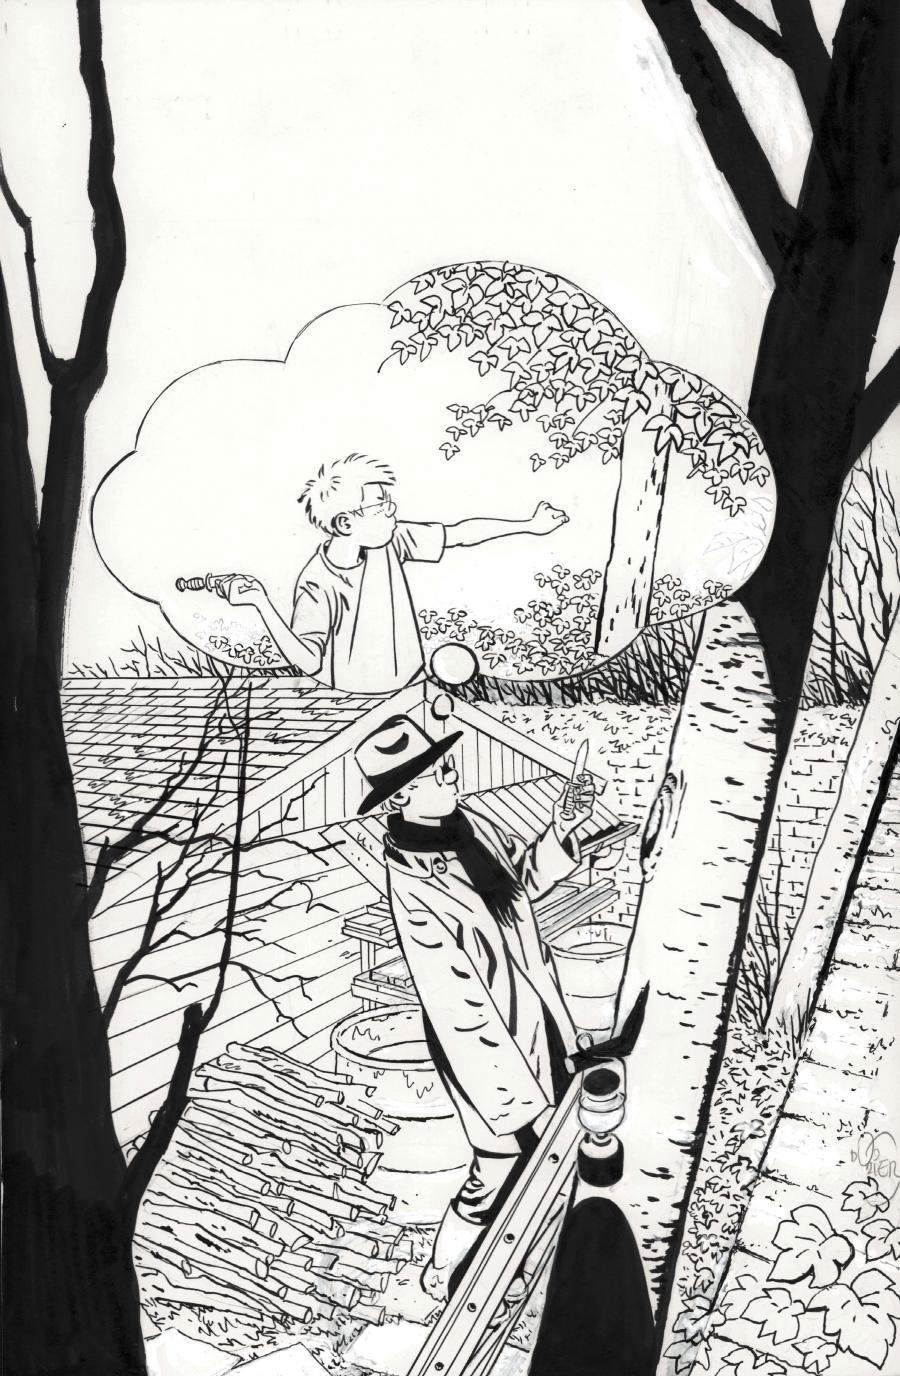 Original cover illustration from JEROME K. JEROME BLOCHE from Spirou journal n°4139 by DODIER